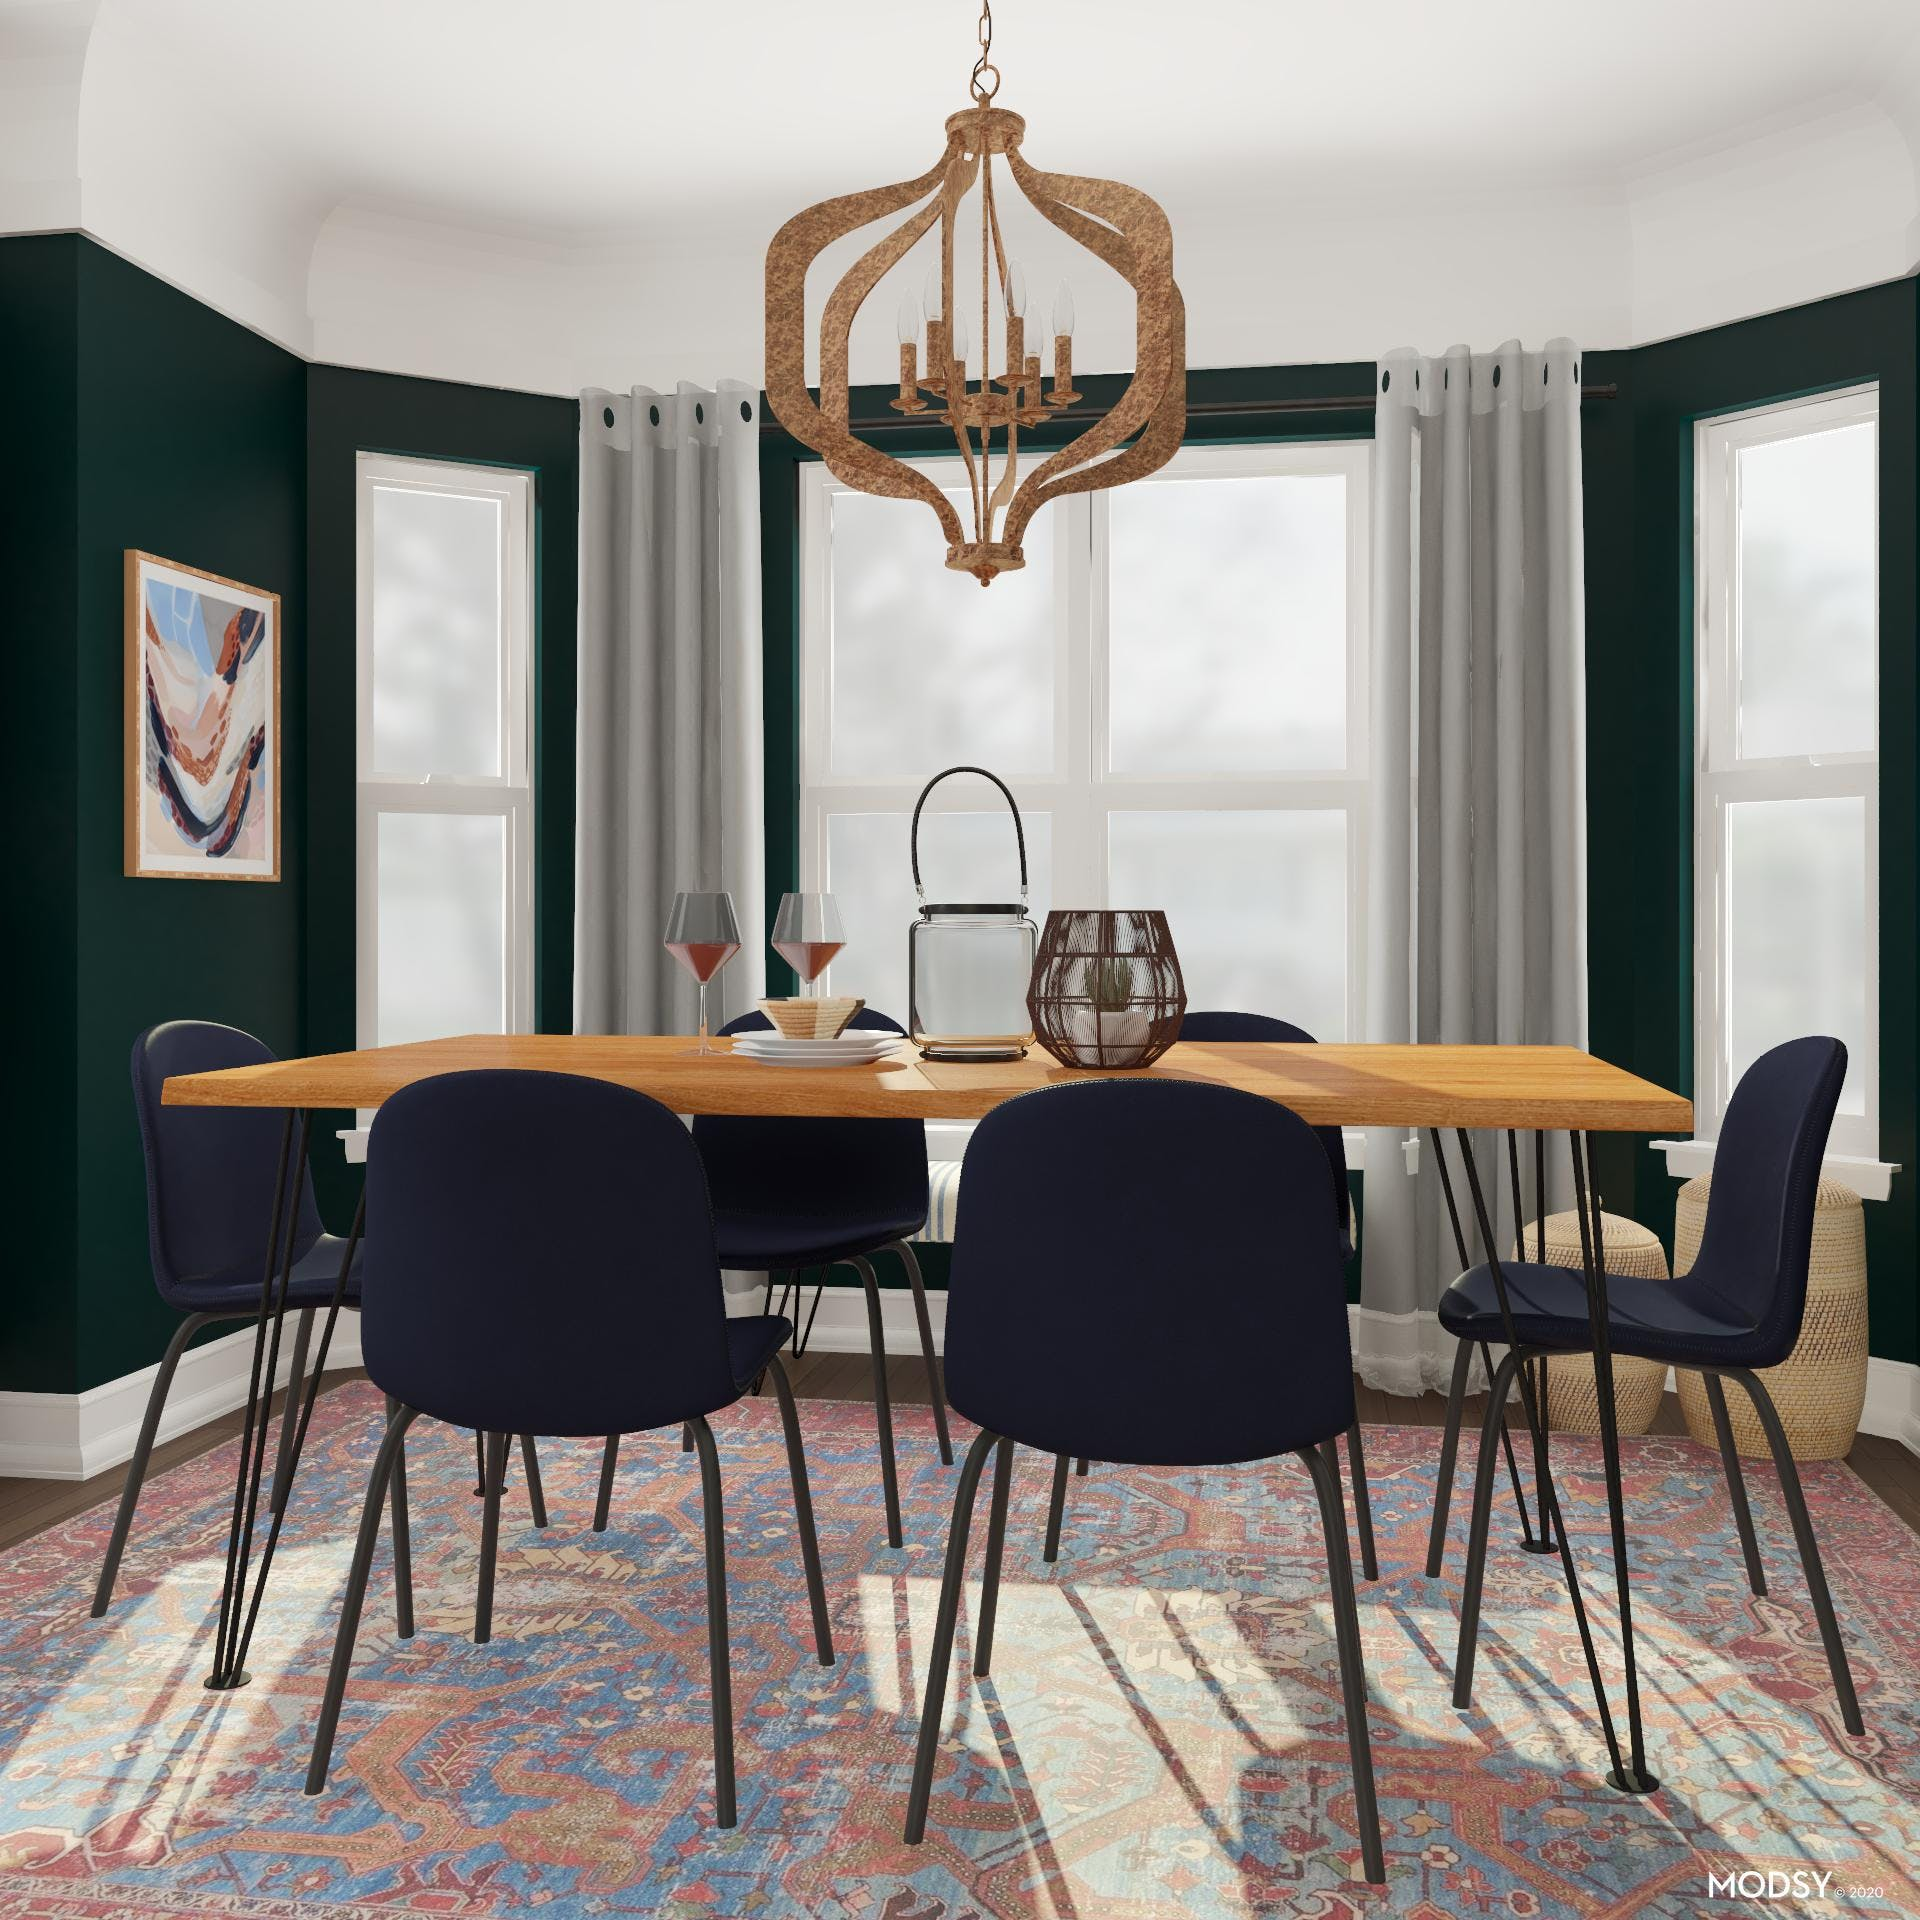 Bold With Jewel Tones: An Eclectic Dining Room